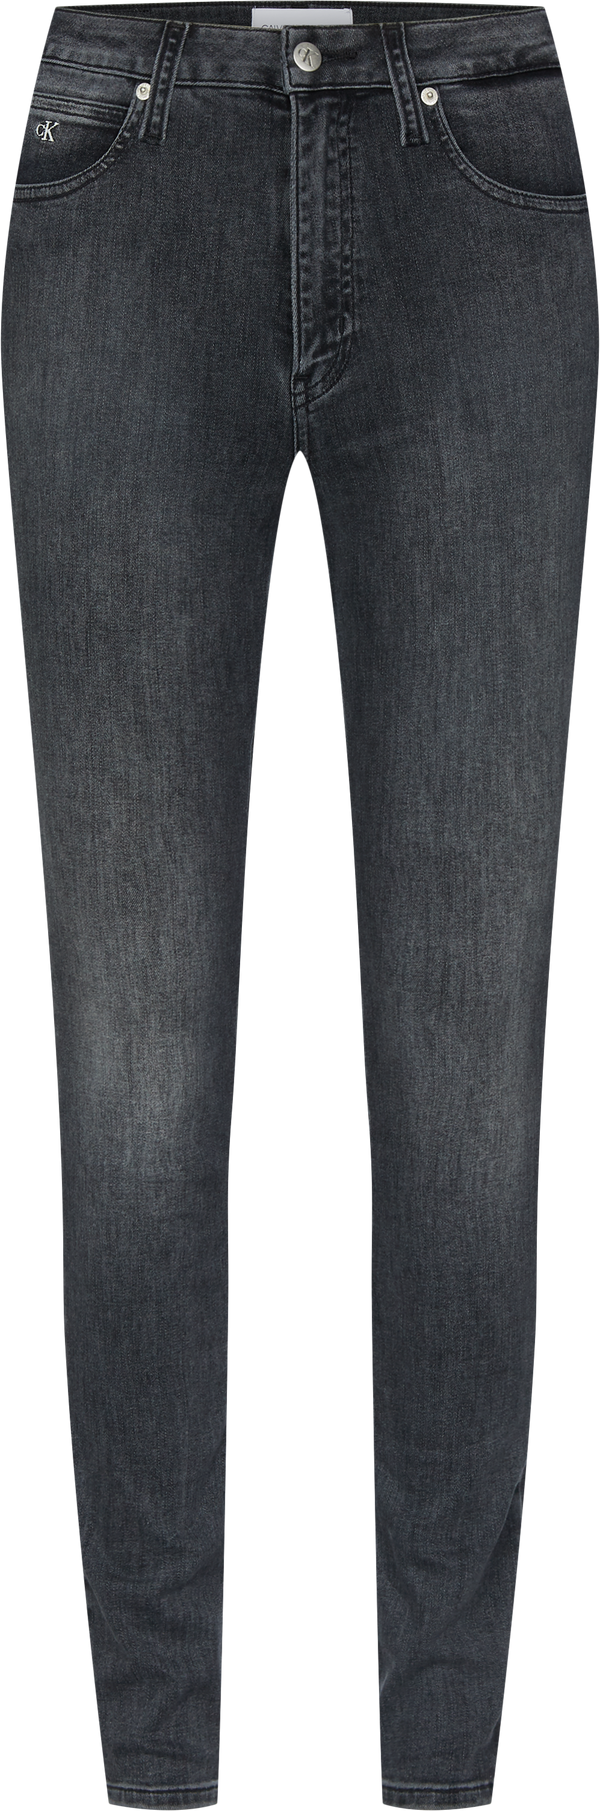 NOOS CKJ 010 HIGH RISE SKINNY (1BZ ZZ004 GREY) - D.O Design Only